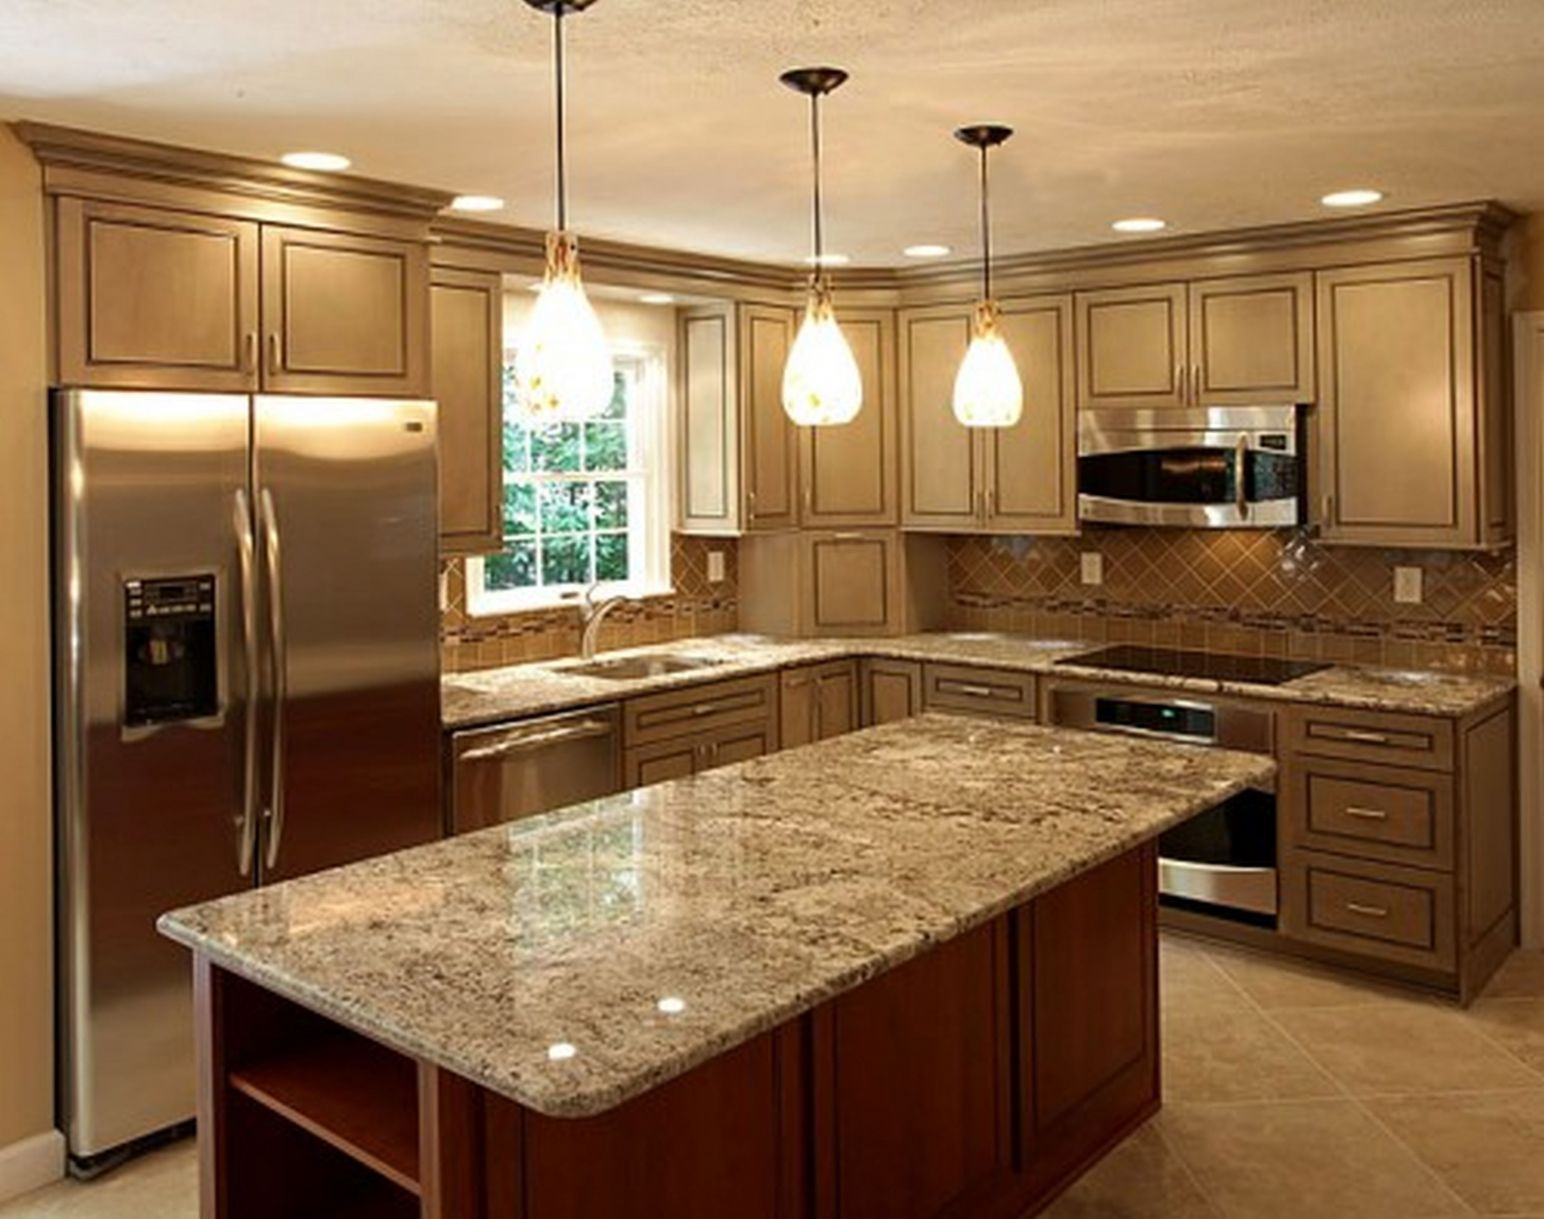 100 lowes kitchen remodel ideas small kitchen pantry ideas check more at http